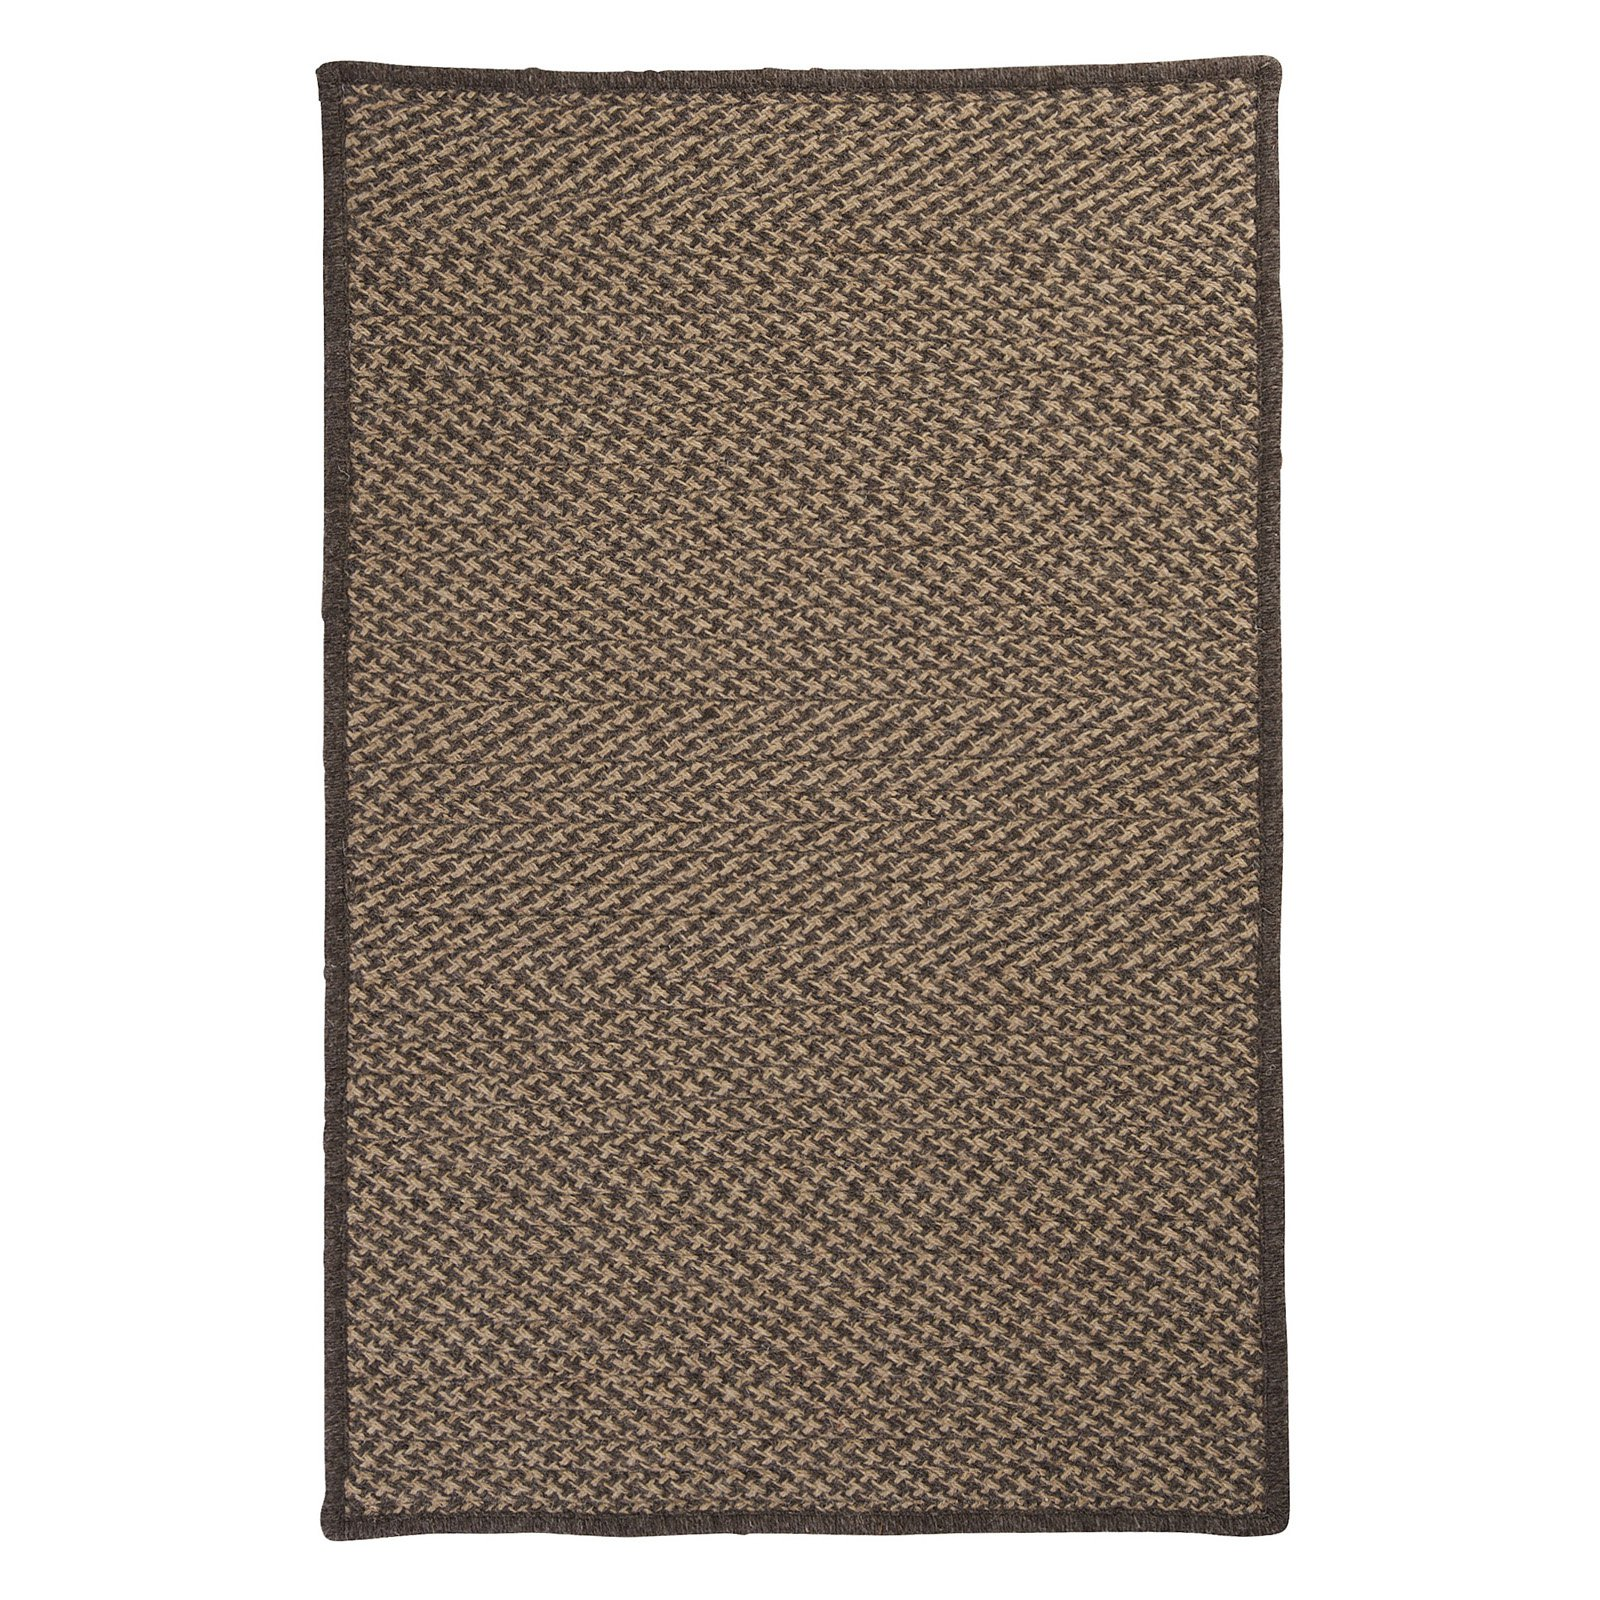 Colonial Mills HD34R Natural Wool Houndstooth Braided Rug - Caramel